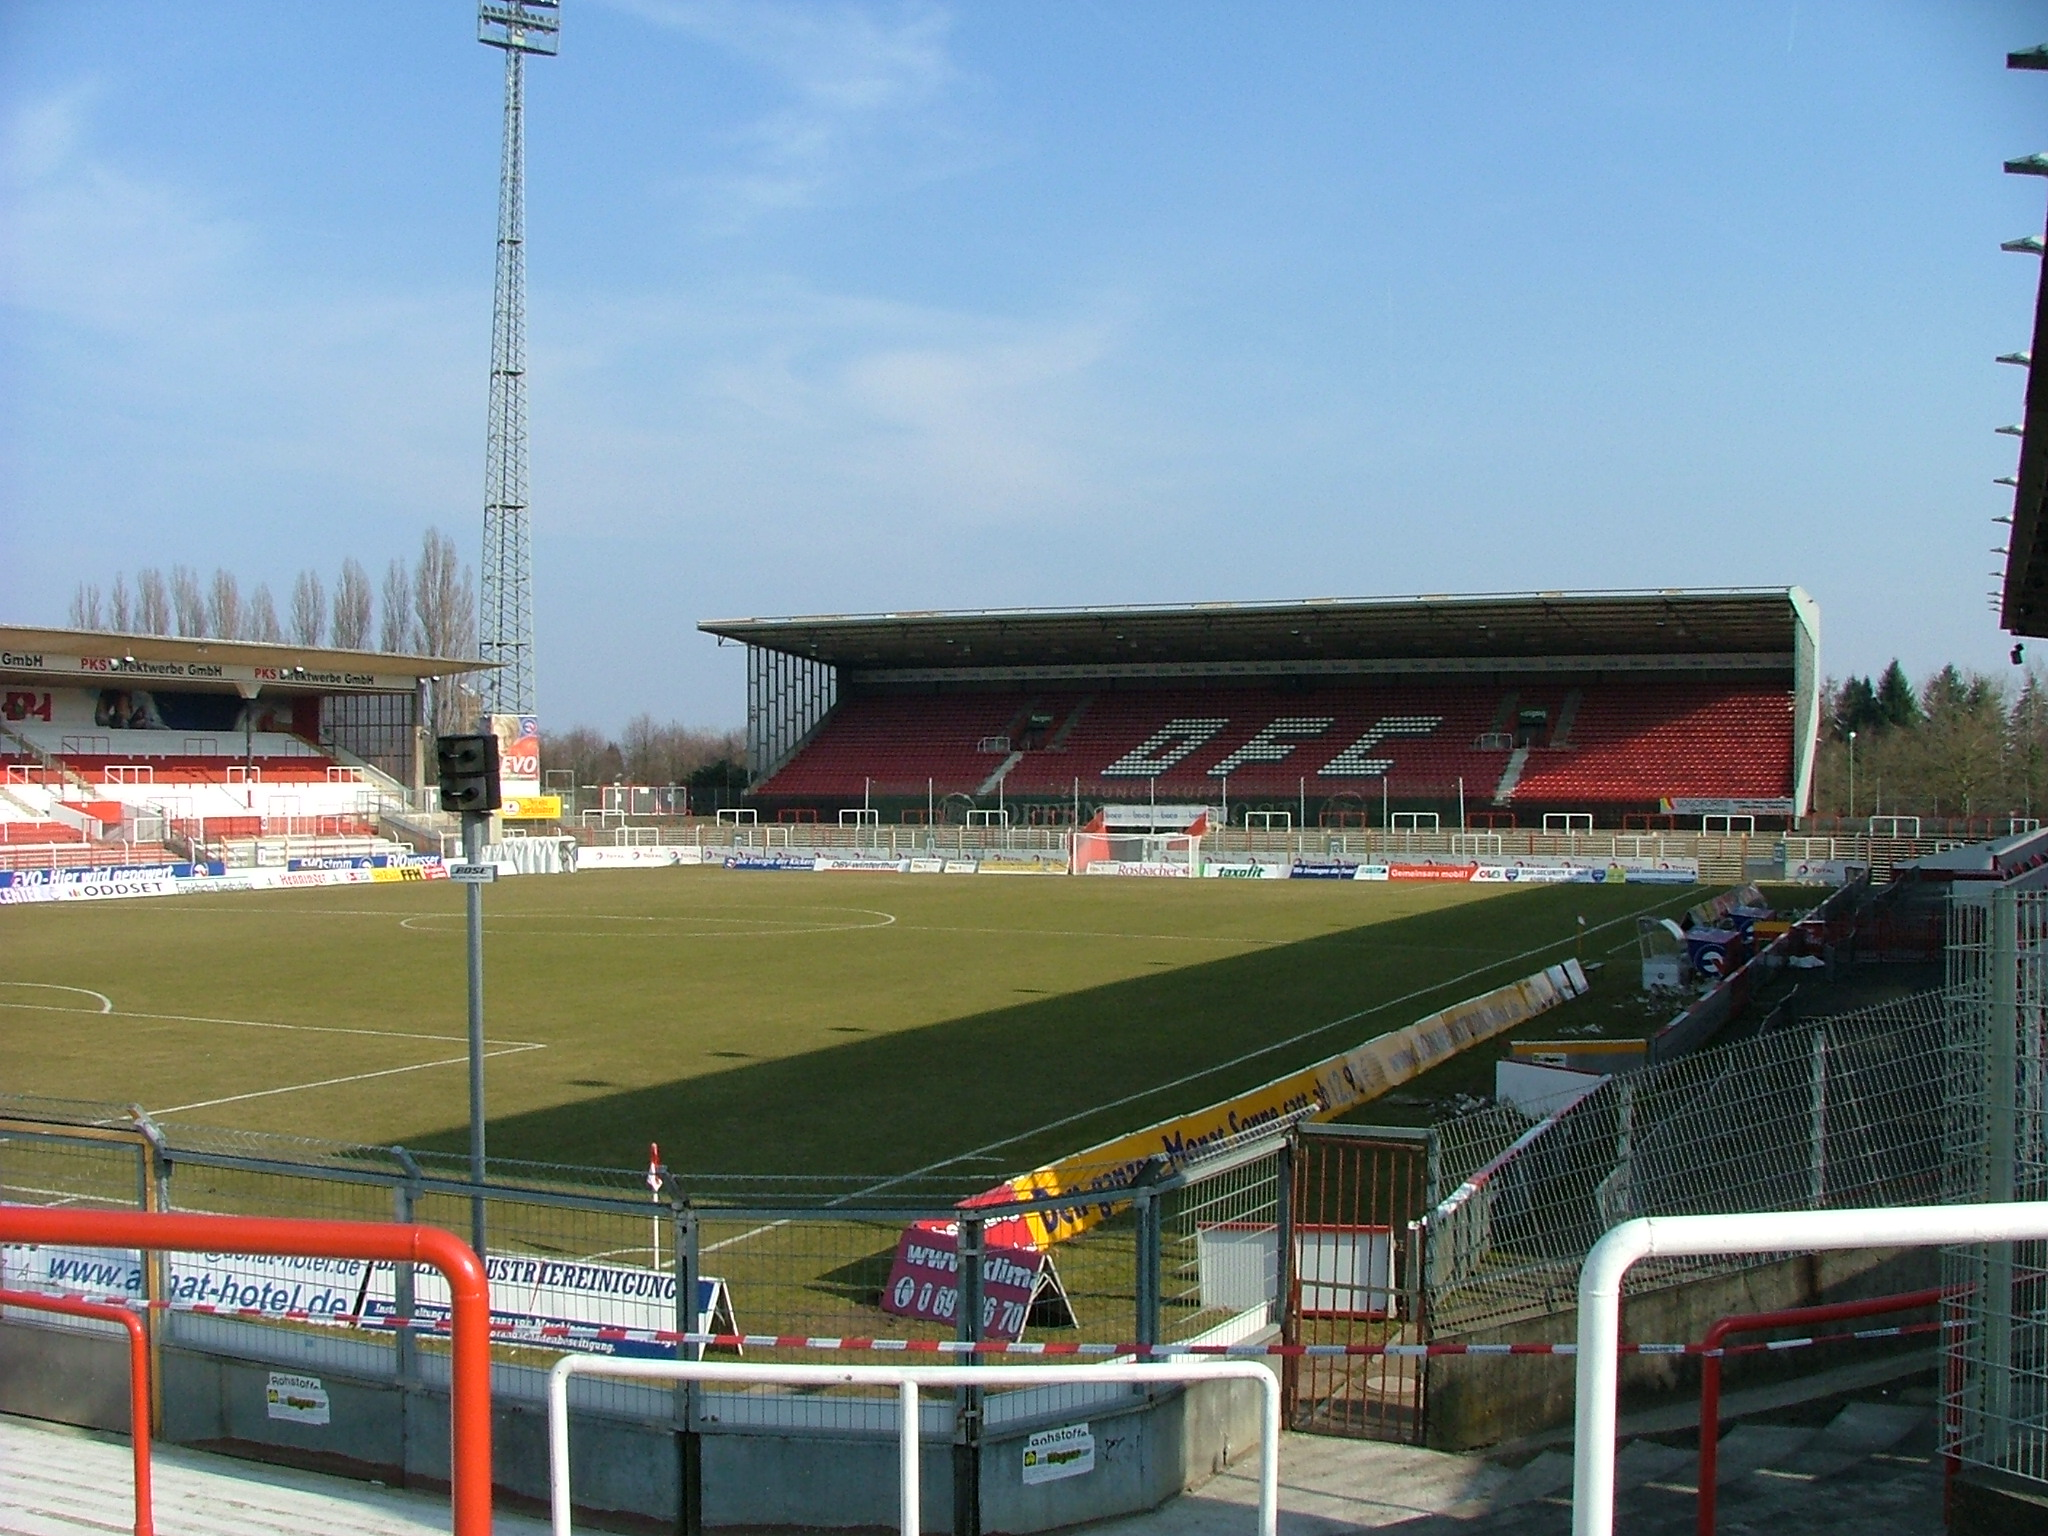 Kickers Stadion Offenbach